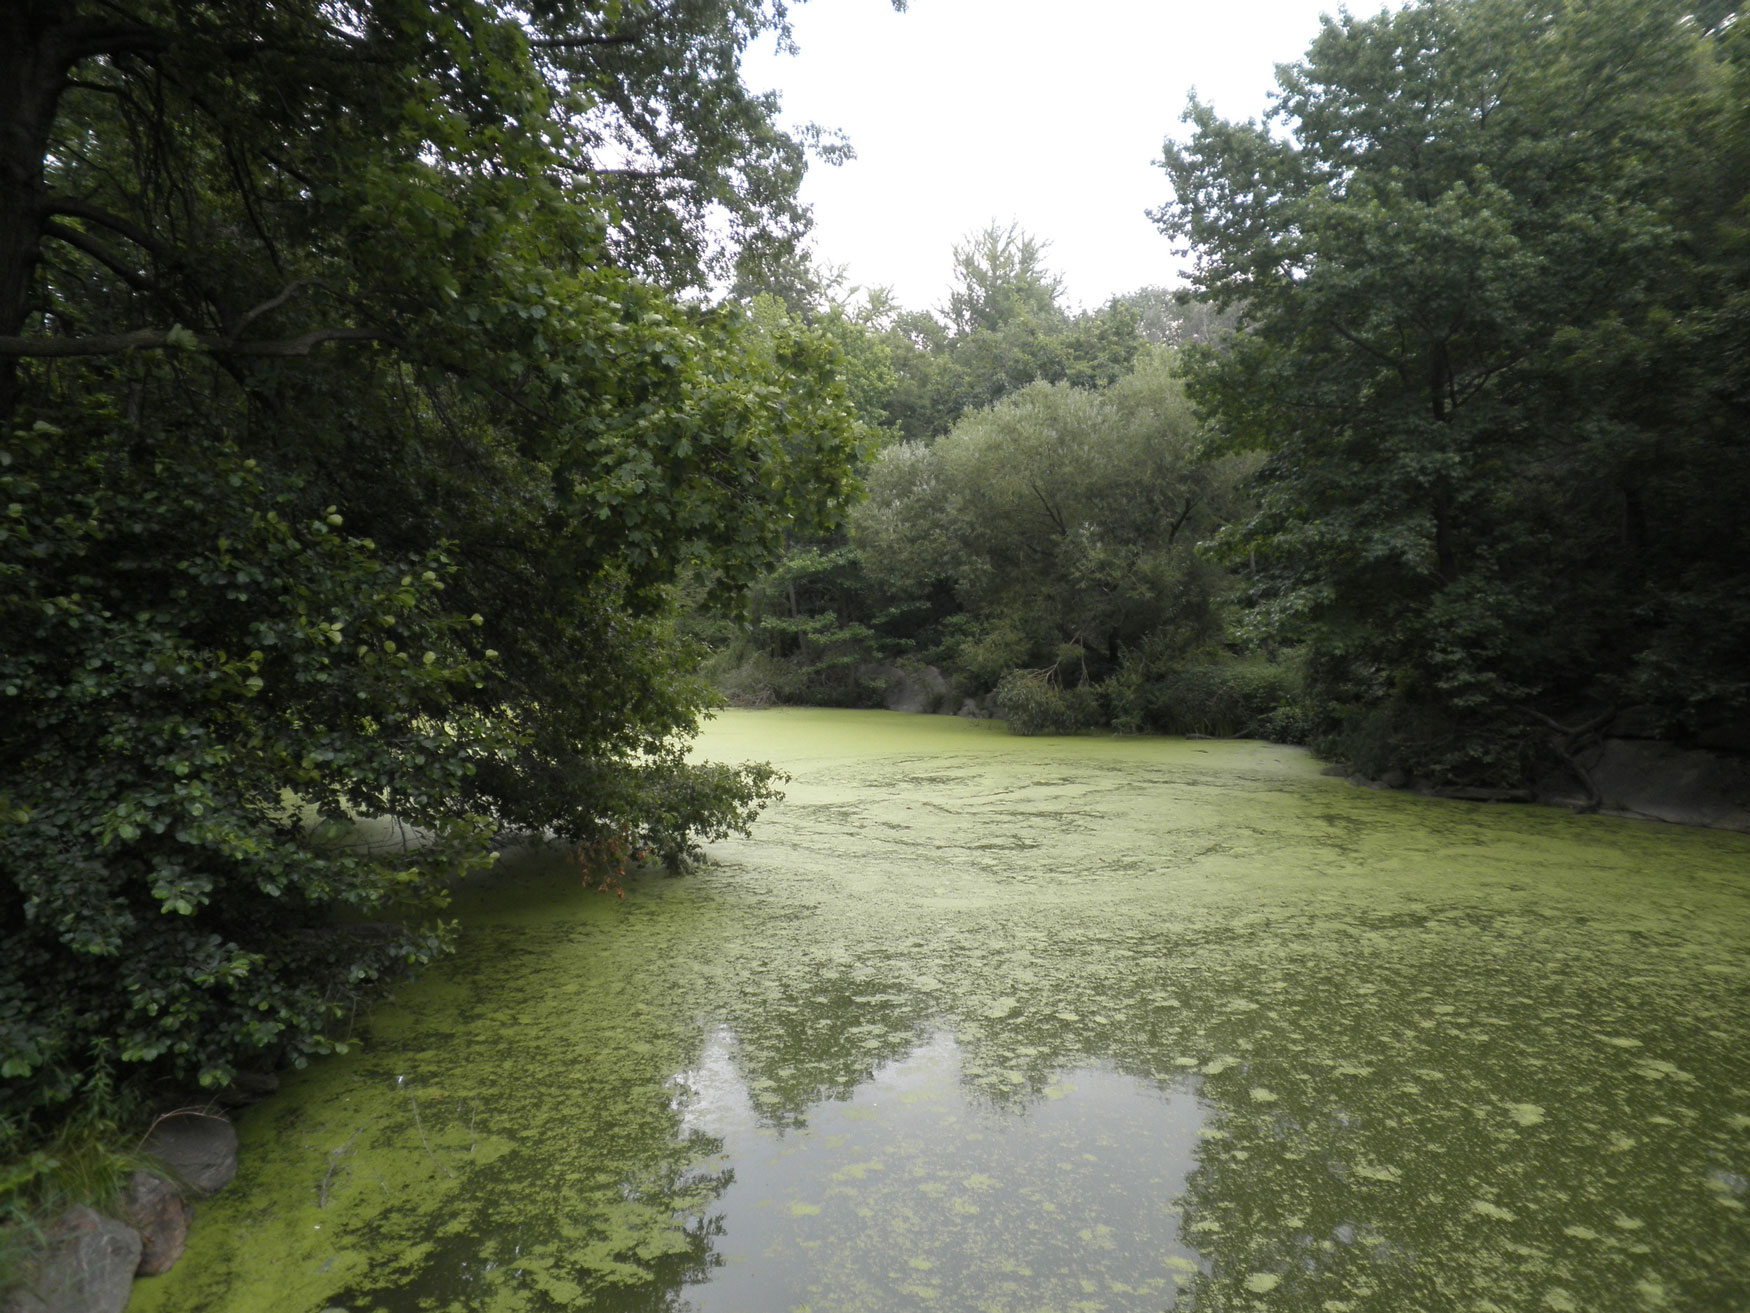 Green lakes in Central Park, New York City